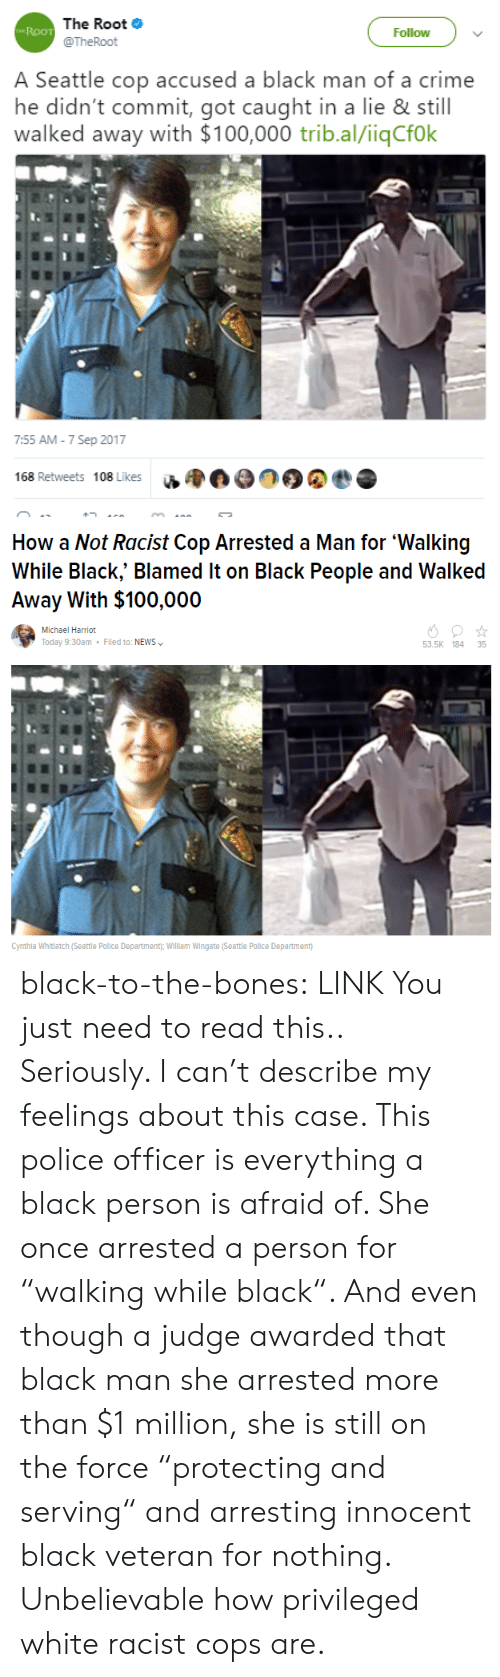 "Anaconda, Bones, and Crime: The Root  @TheRoot  Roo  Follow  A Seattle cop accused a black man of a crime  he didn't commit, got caught in a lie & still  walked away with $100,000 trib.al/iiqCfok  7:55 AM -7 Sep 2017  168 Retweets 108 Likes u  0000   How a Not Racist Cop Arrested a Man for 'Walking  While Black,"" Blamed It on Black People and Walked  Away With $100,000  Michael Harriot  Today 9:30am  Filed to: NEWS  53.5K 184 35  Cynthla Whltlatch (Seattle Police Department; William Wingate (Seattle Polilce Department) black-to-the-bones:  LINK You just need to read this.. Seriously. I can't describe my feelings about this case. This police officer is everything a black person is afraid of. She once arrested a person for ""walking while black"". And even though a judge awarded that black man she arrested more than $1 million, she is still on the force ""protecting and serving"" and arresting innocent black veteran for nothing. Unbelievable how privileged white racist cops are."